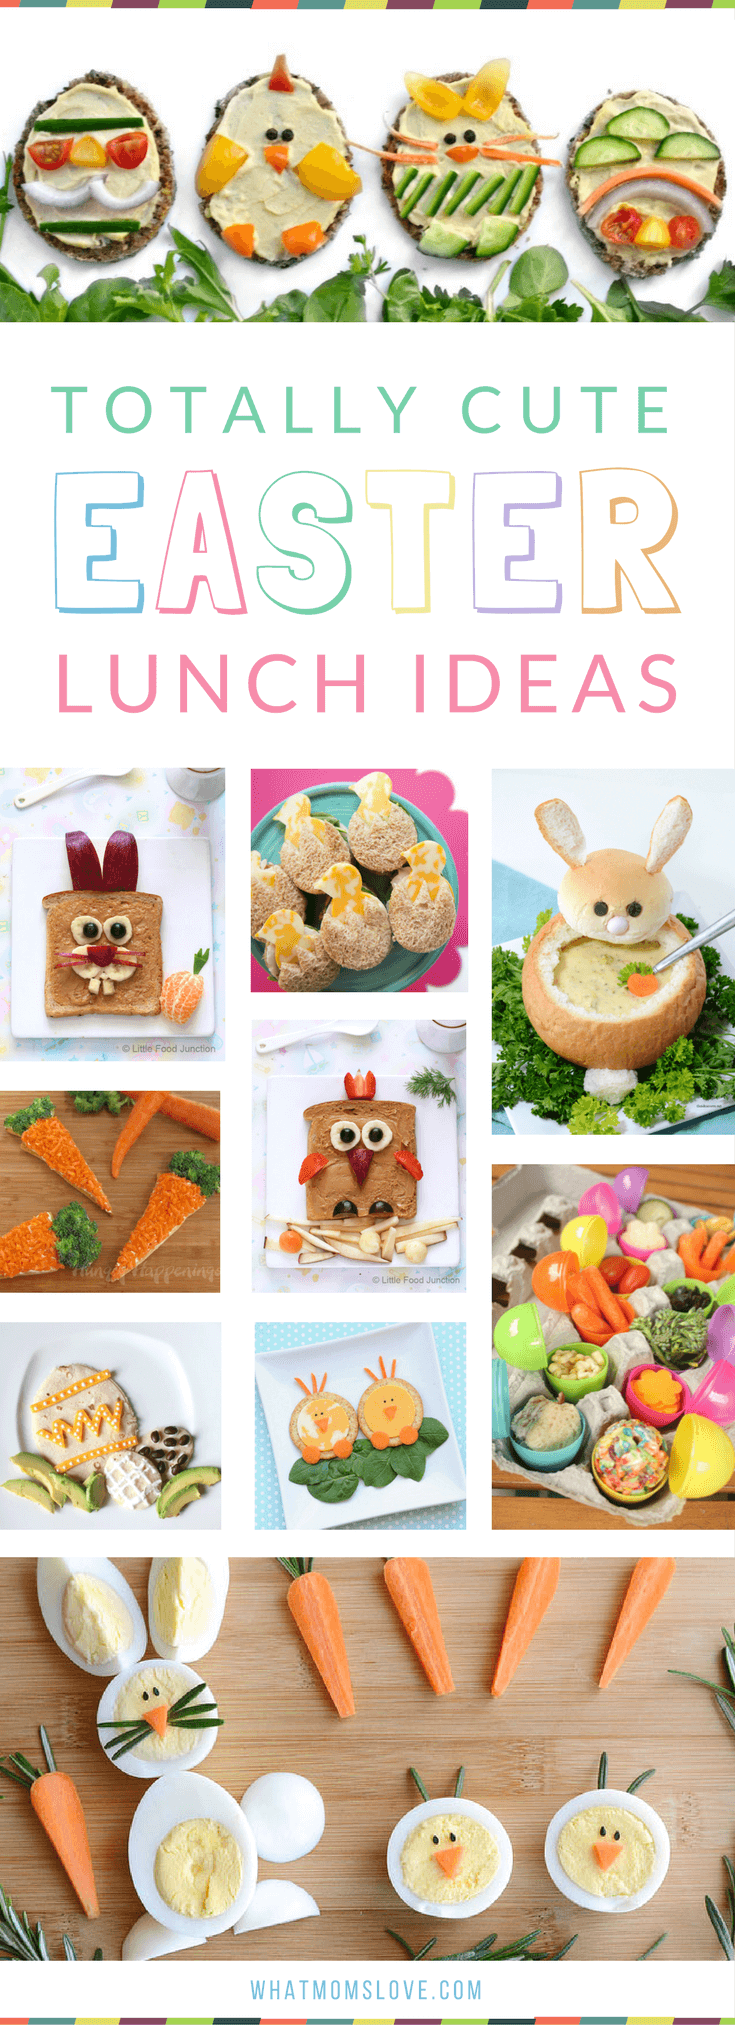 Easter Food Ideas for Kids | Lunch recipes that are healthy, fun and easy to make for your children